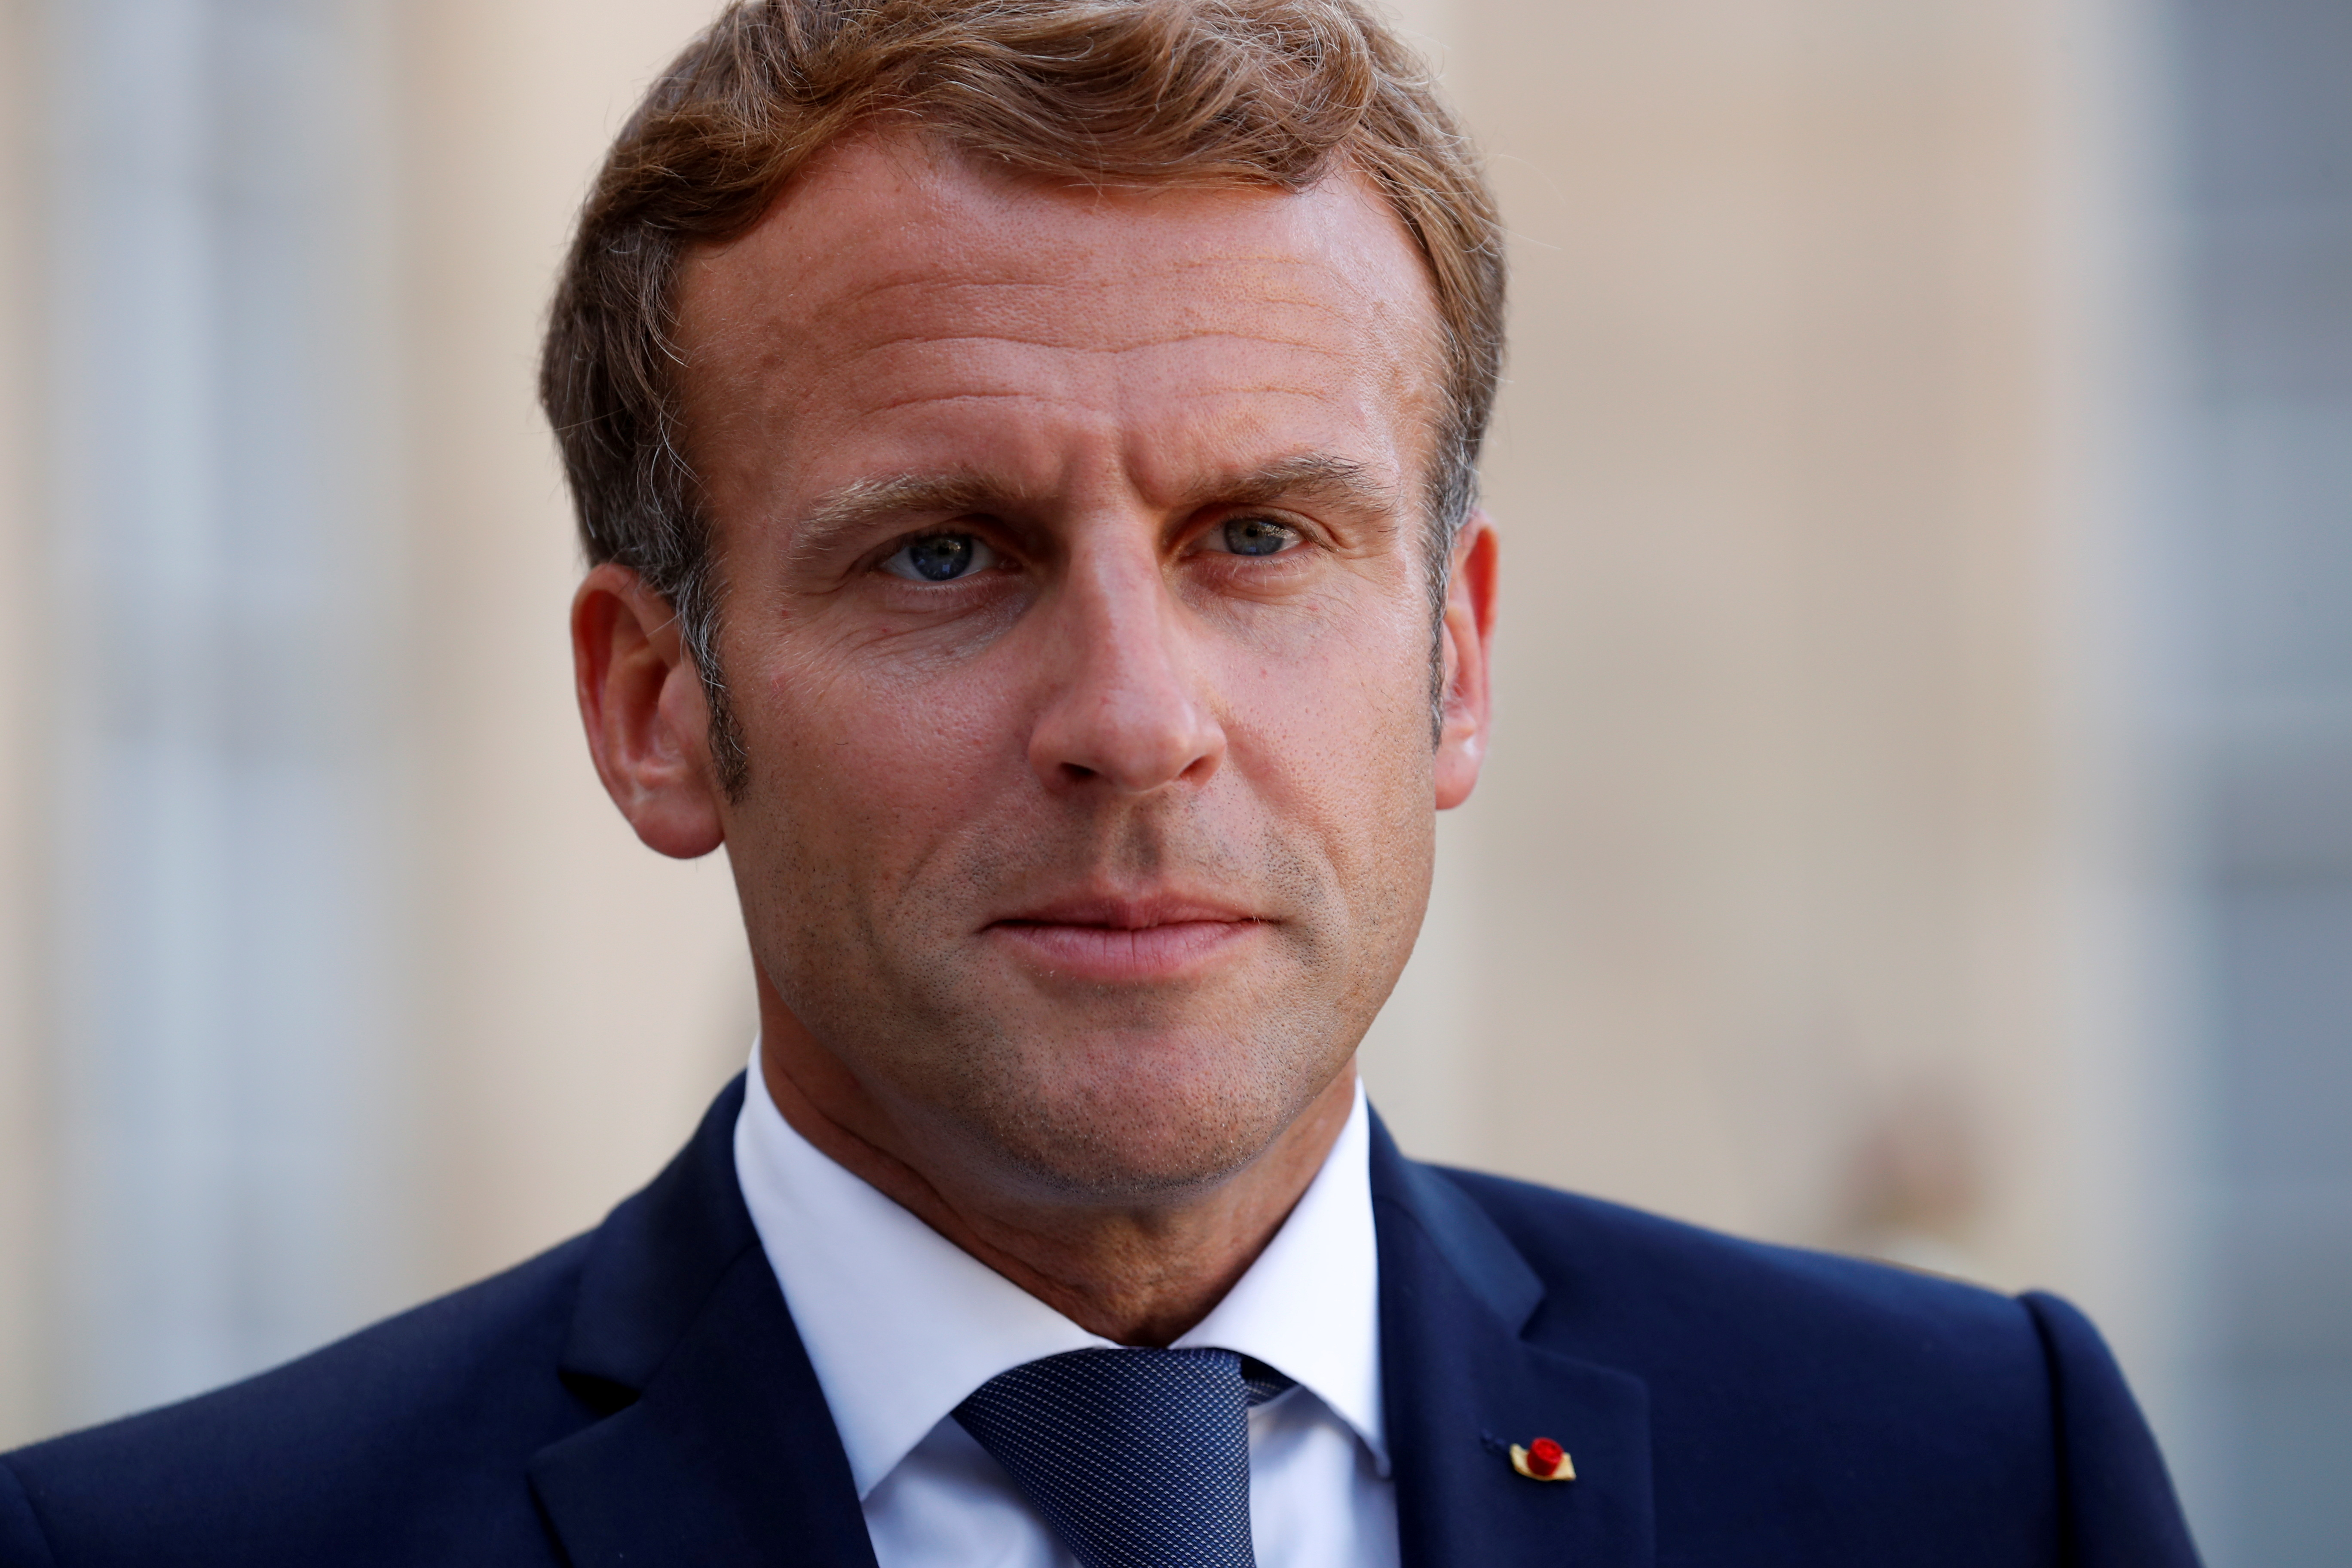 French President Emmanuel Macron delivers a joint statement with Chile's President Sebastian Pinera (not seen) after a meeting at the Elysee Palace in Paris, France, September 6, 2021. REUTERS/Gonzalo Fuentes